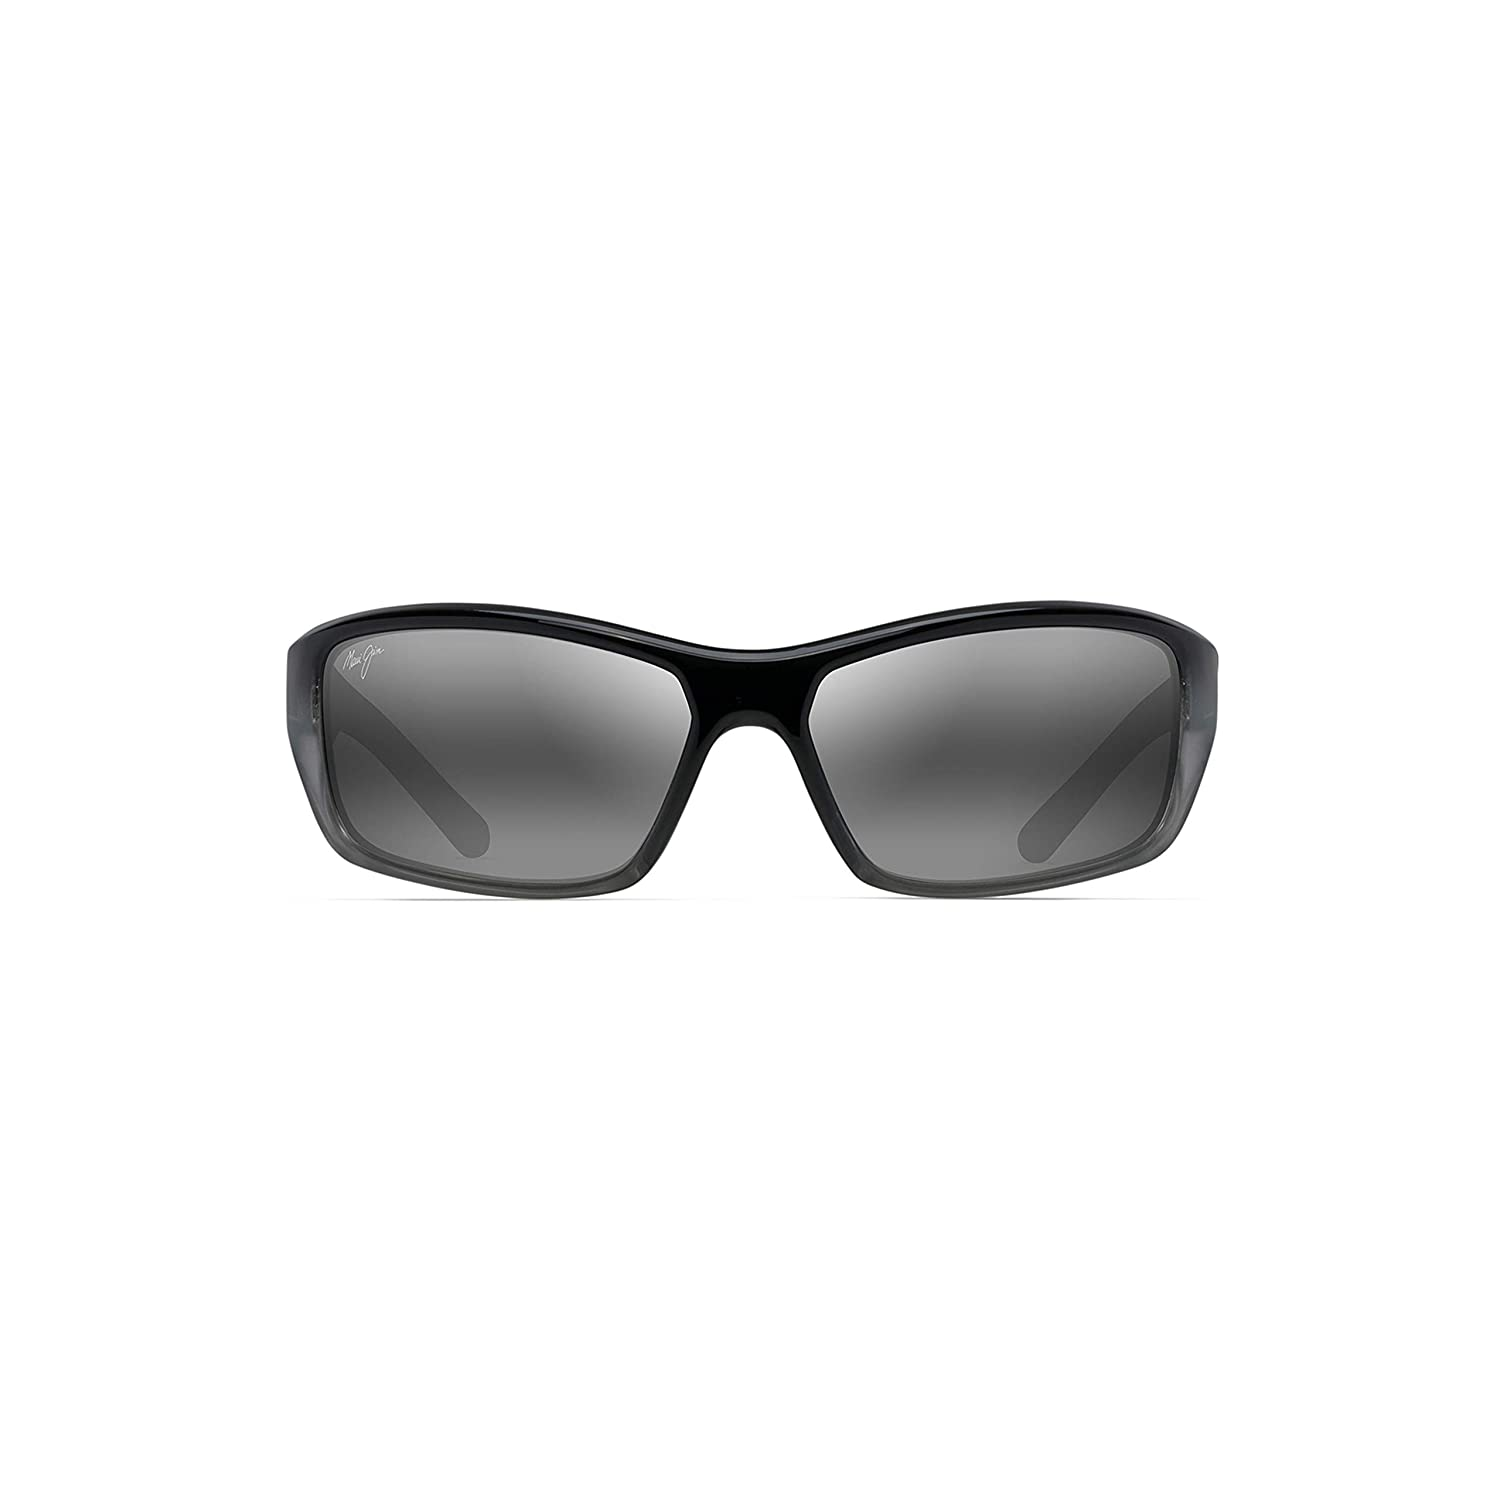 49e6c0d8aaa6 Amazon.com: Maui Jim Barrier Reef 792-14C   Polarized Black with Silver and  Grey Wrap Frame Sunglasses, Neutral Lenses, with with Patented  PolarizedPlus2 ...